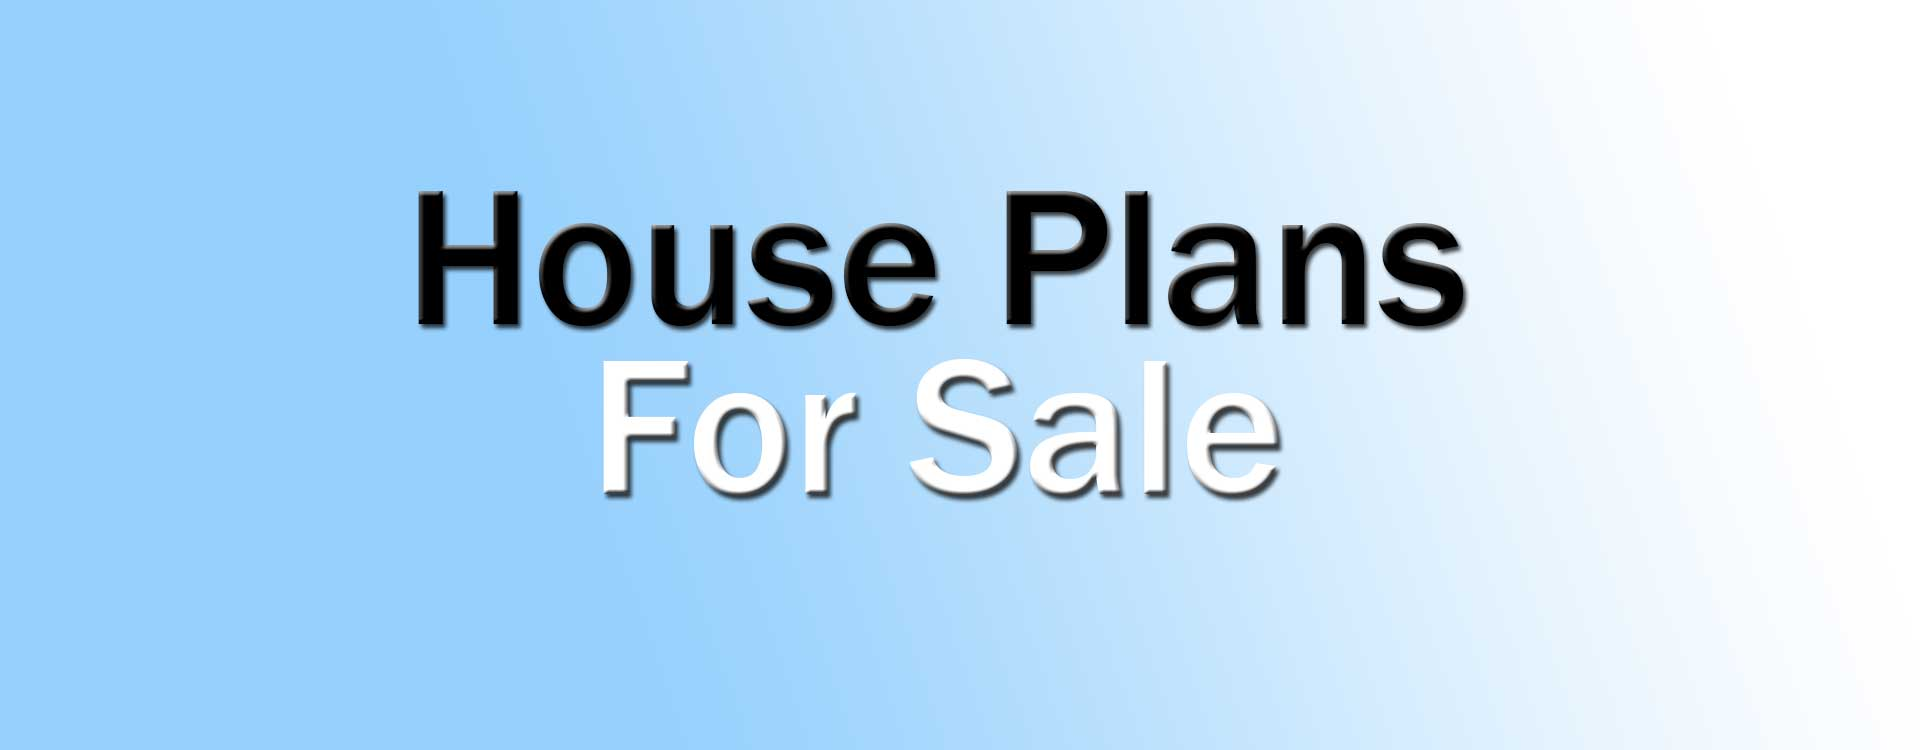 House Plans For Sale Banner Nethouseplans